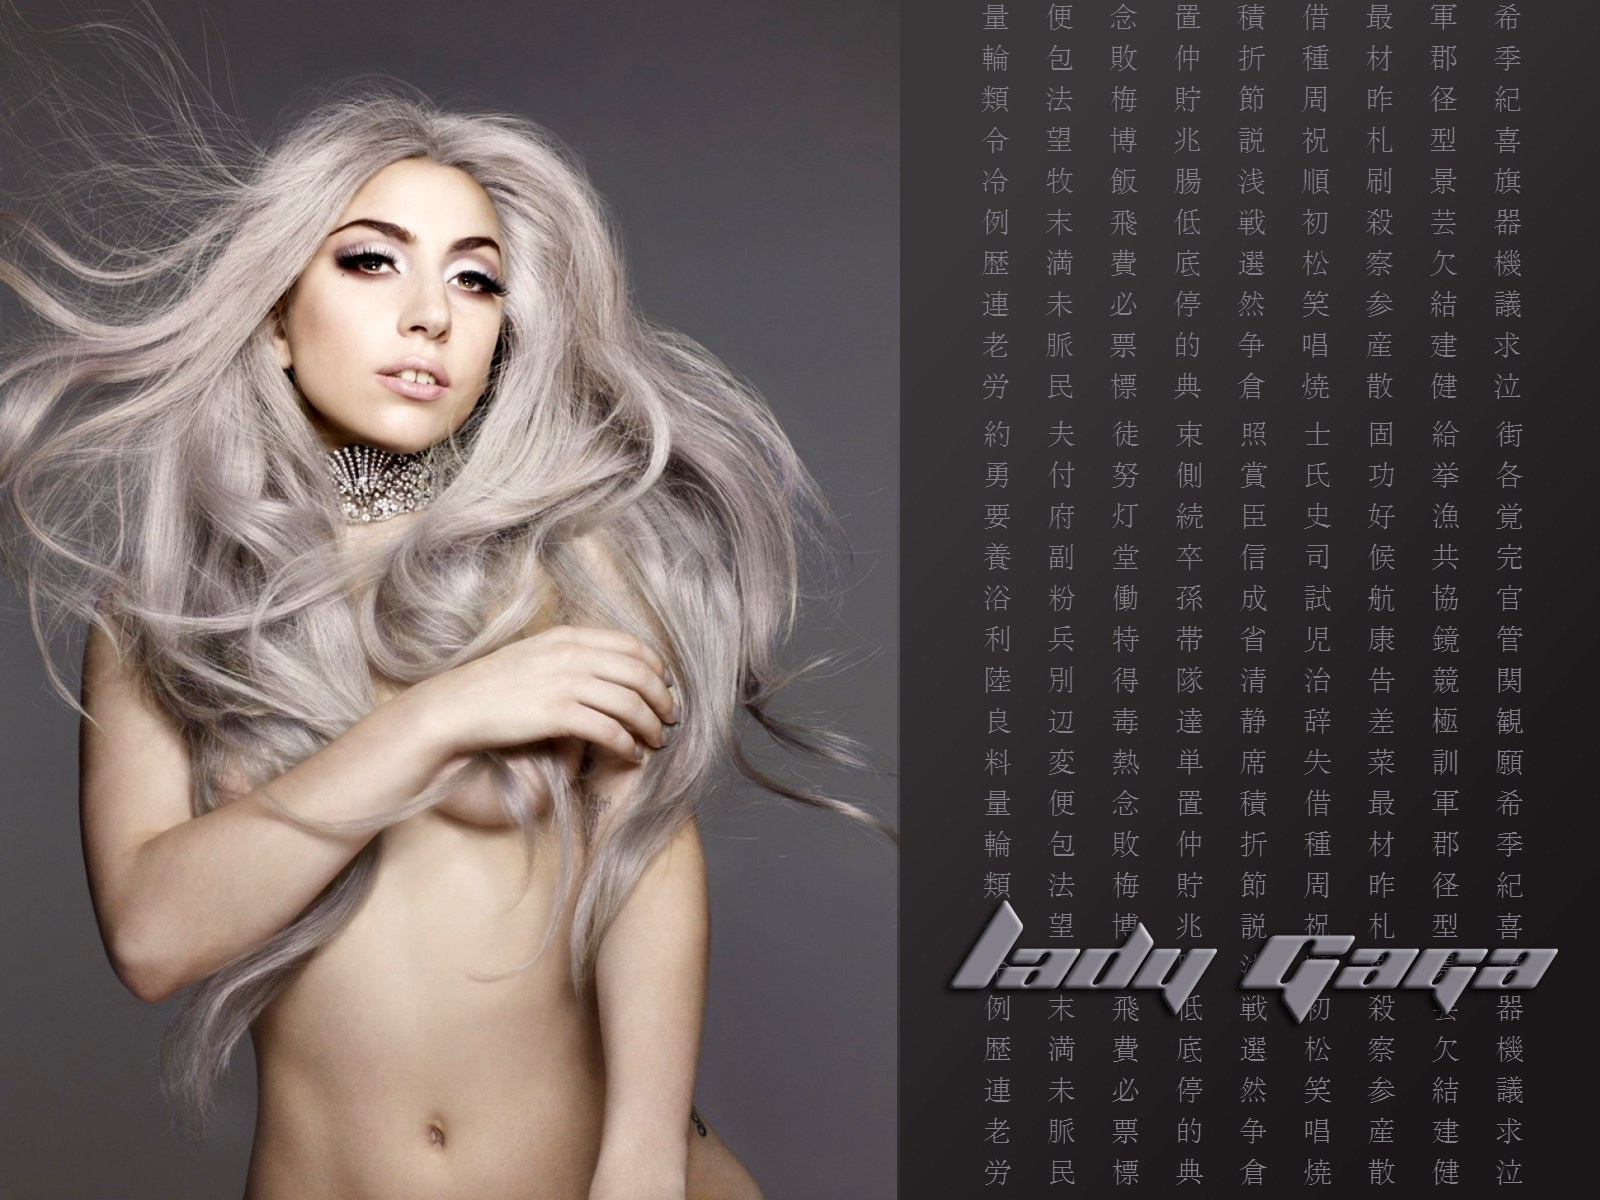 http://3.bp.blogspot.com/-oX_V6P_gF1c/TtOY5FoR1OI/AAAAAAAAFL0/EIDUfghqM7Y/s1600/sploogeblog_lady_gaga_naked_topless_castsuit_wallpaper_01.jpg